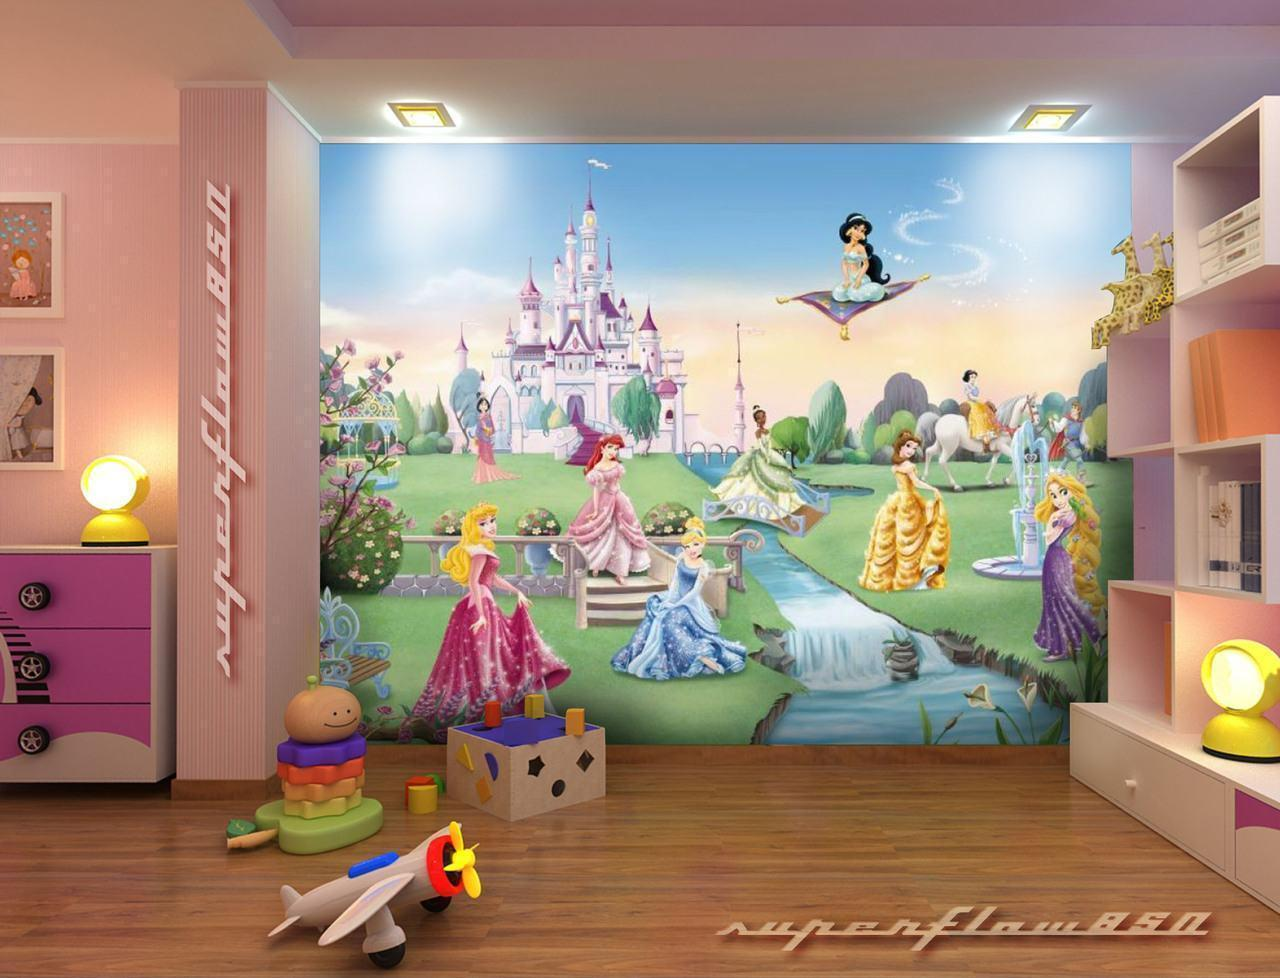 Princess Castle Disney Wallpaper Mural KIDS EBay HD Wallpapers U0026 Part 62